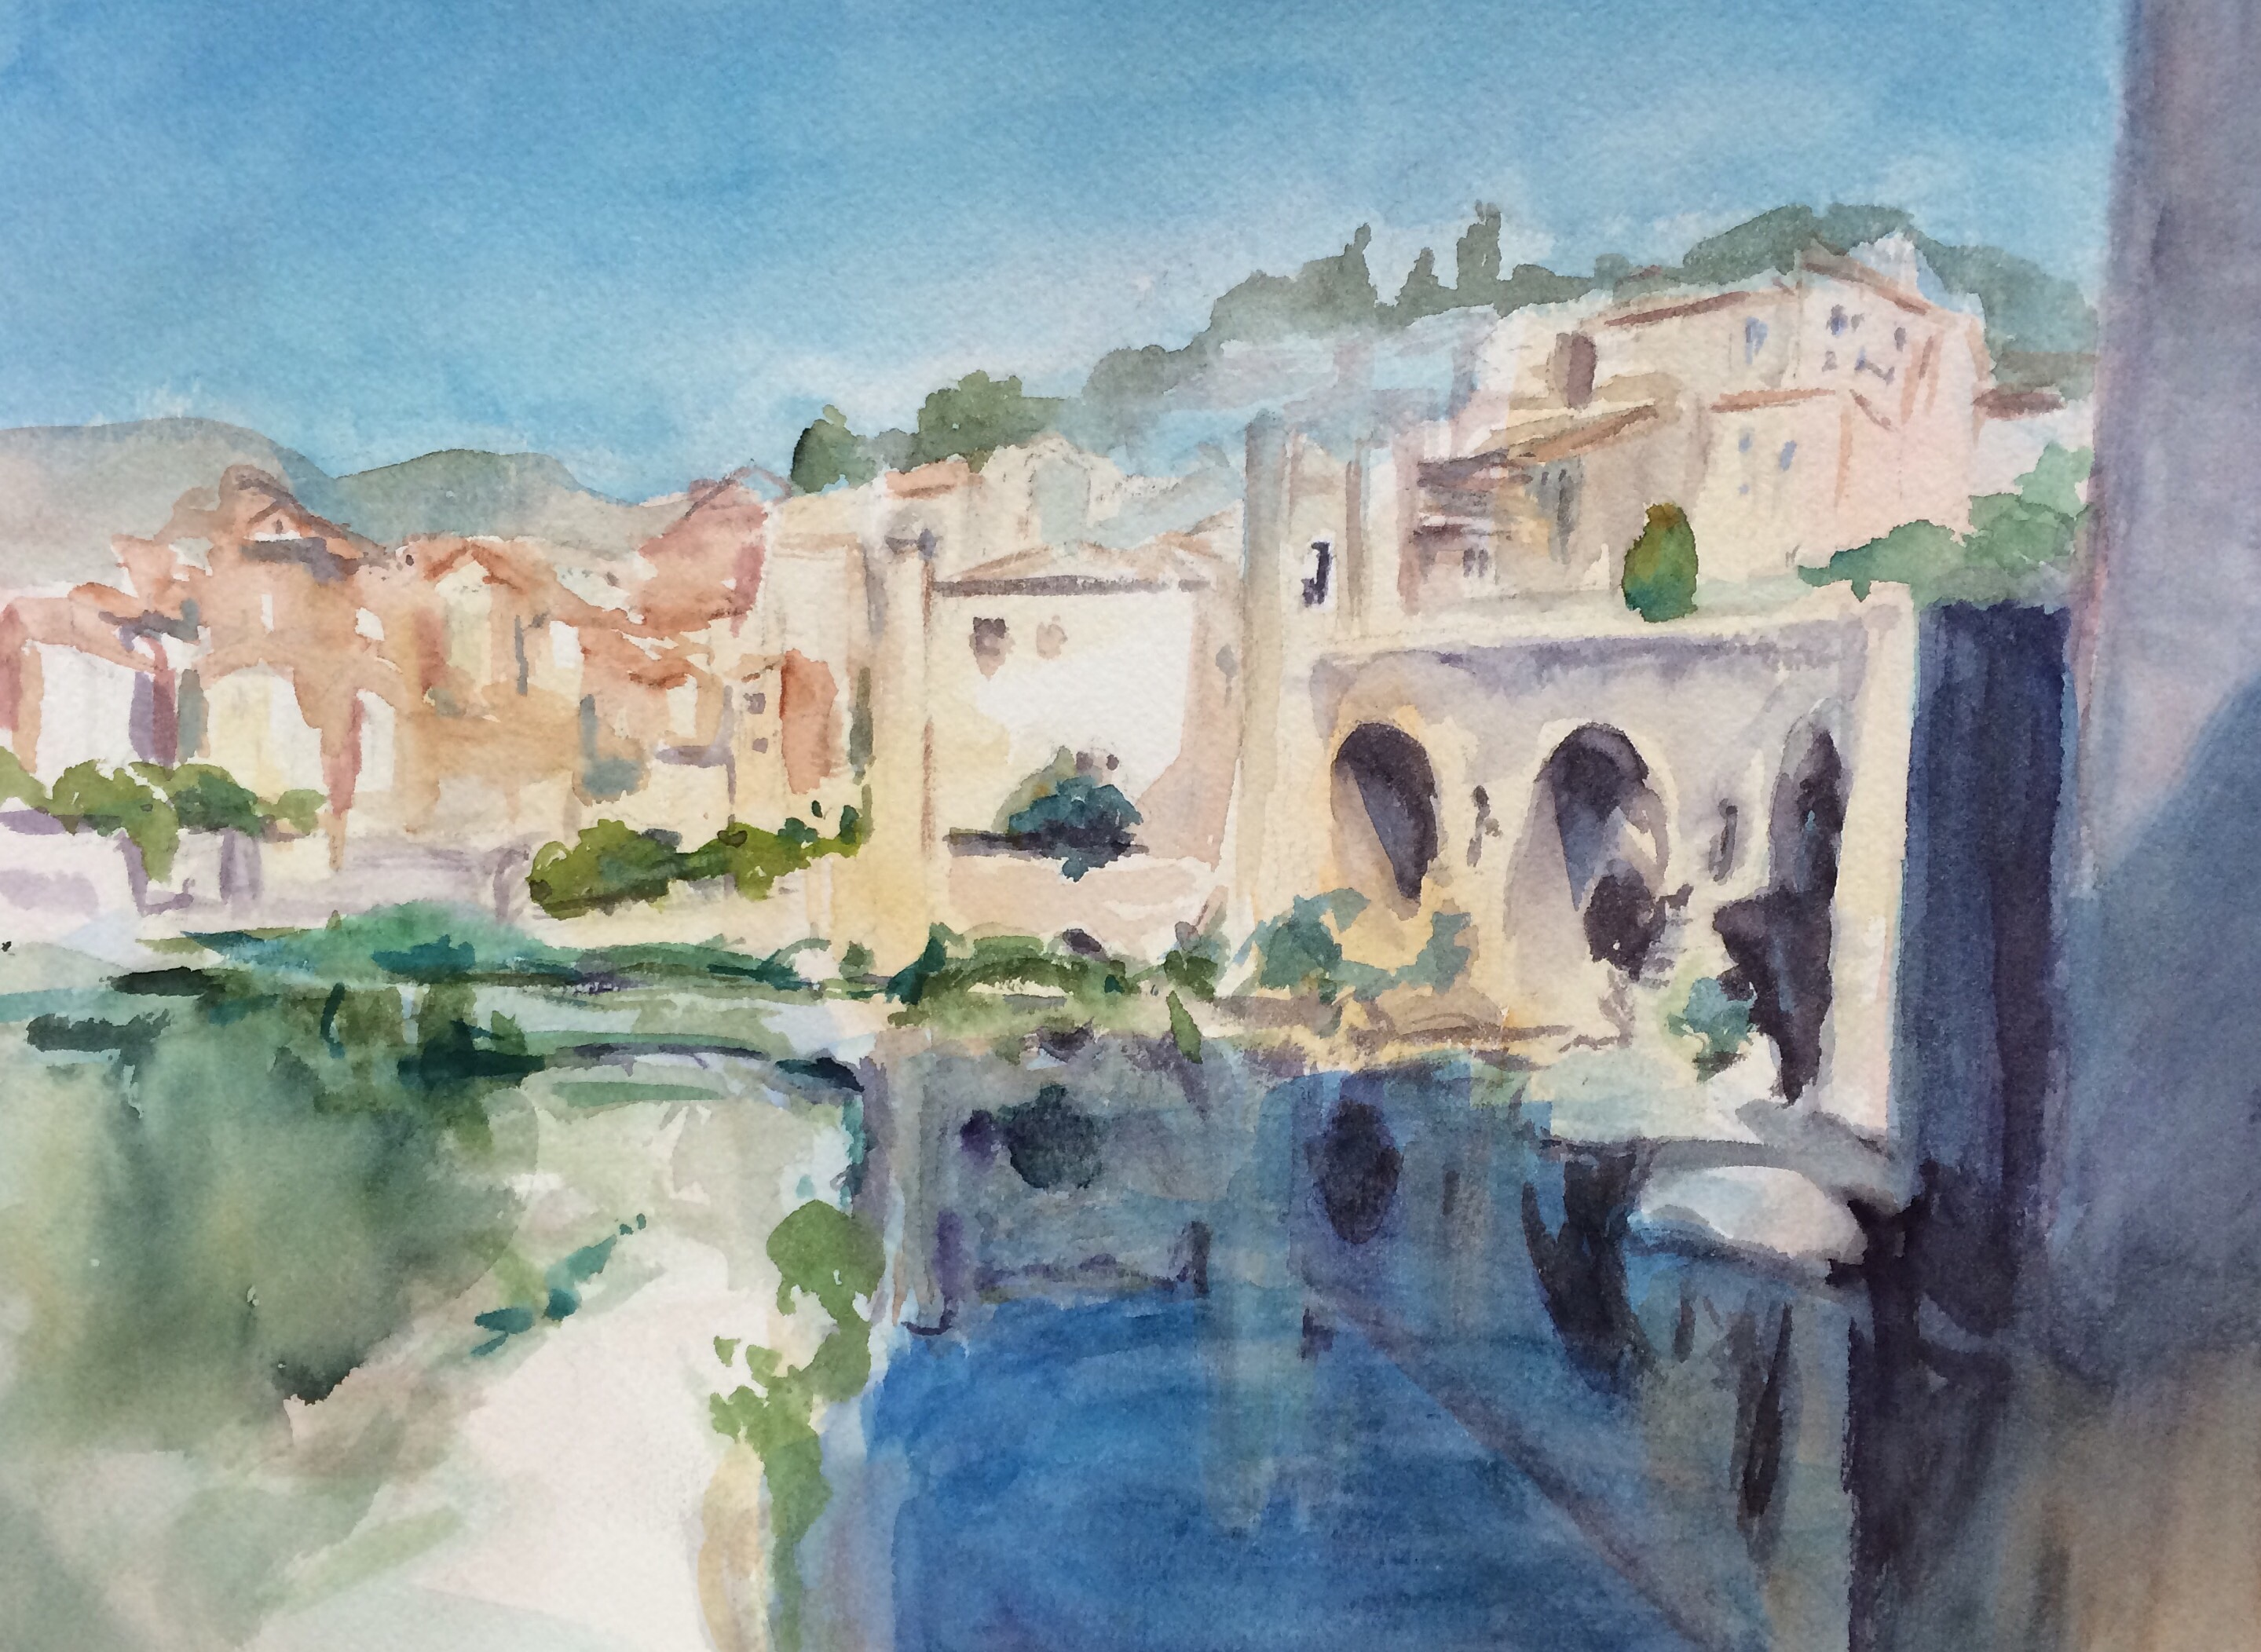 Bridge and Water, Besalu